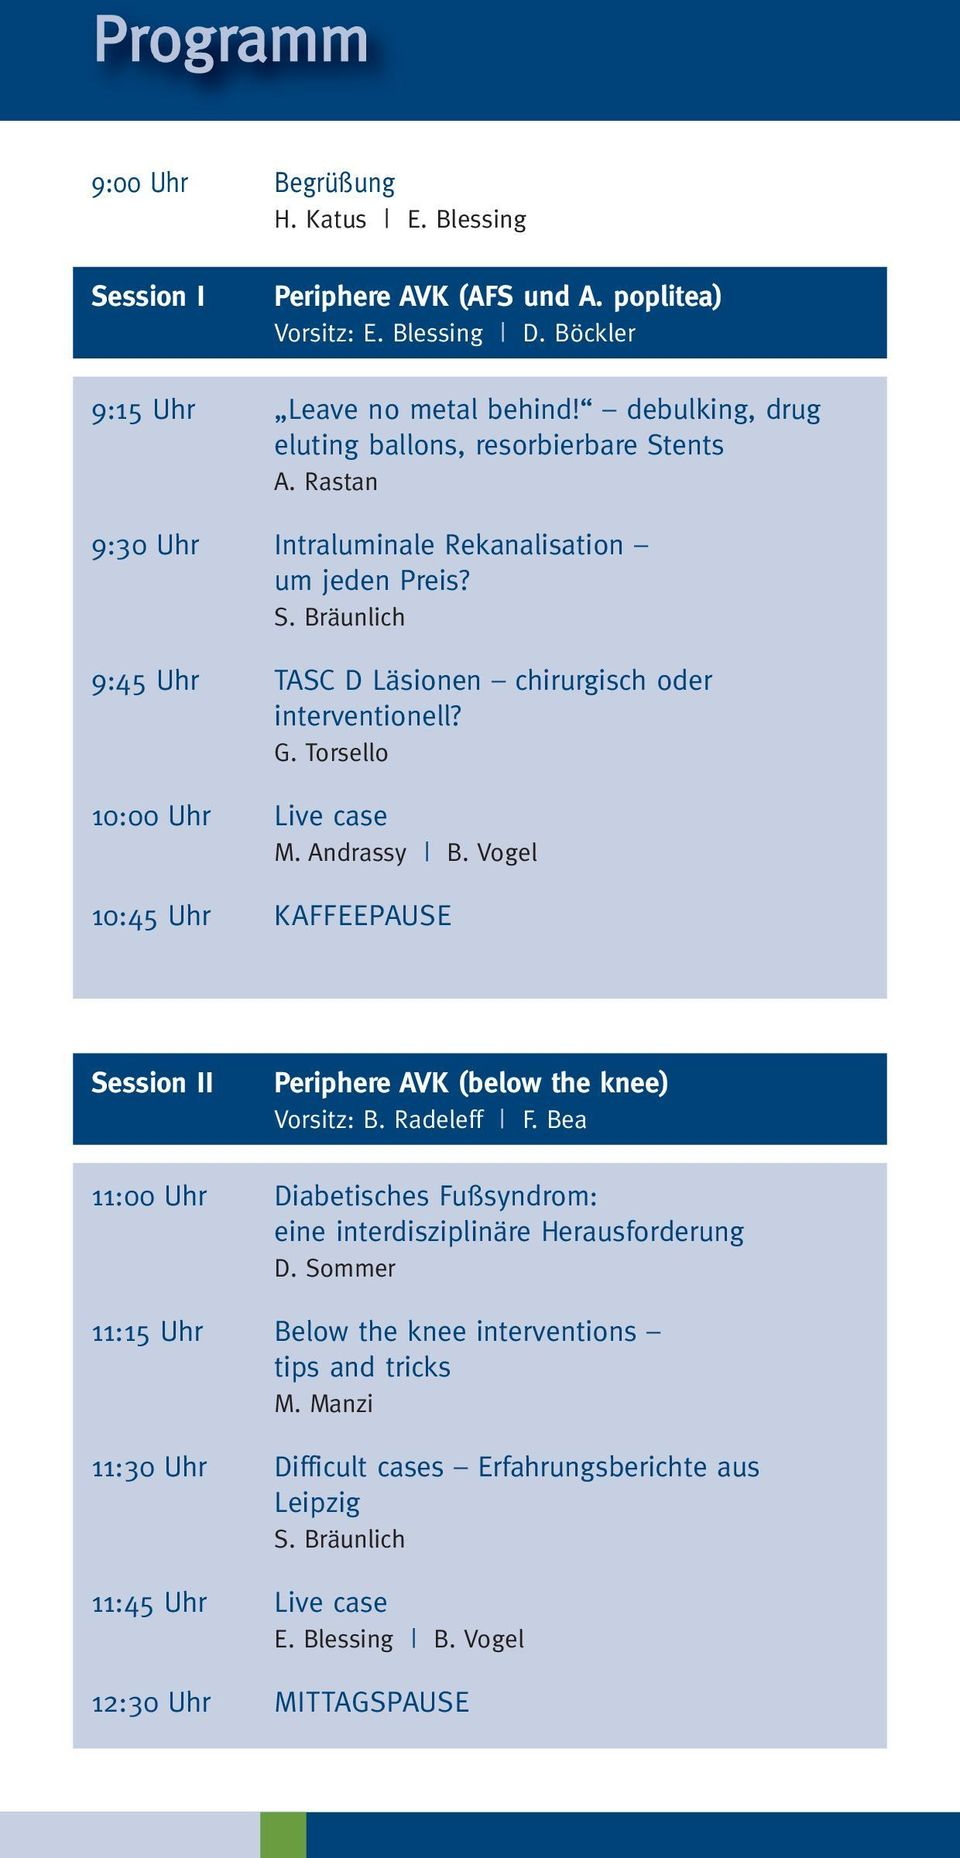 Torsello 10:00 Uhr Live case M. Andrassy B. Vogel 10:45 Uhr KAFFEEPAUSE Session II Periphere AVK (below the knee) Vorsitz: B. Radeleff F.